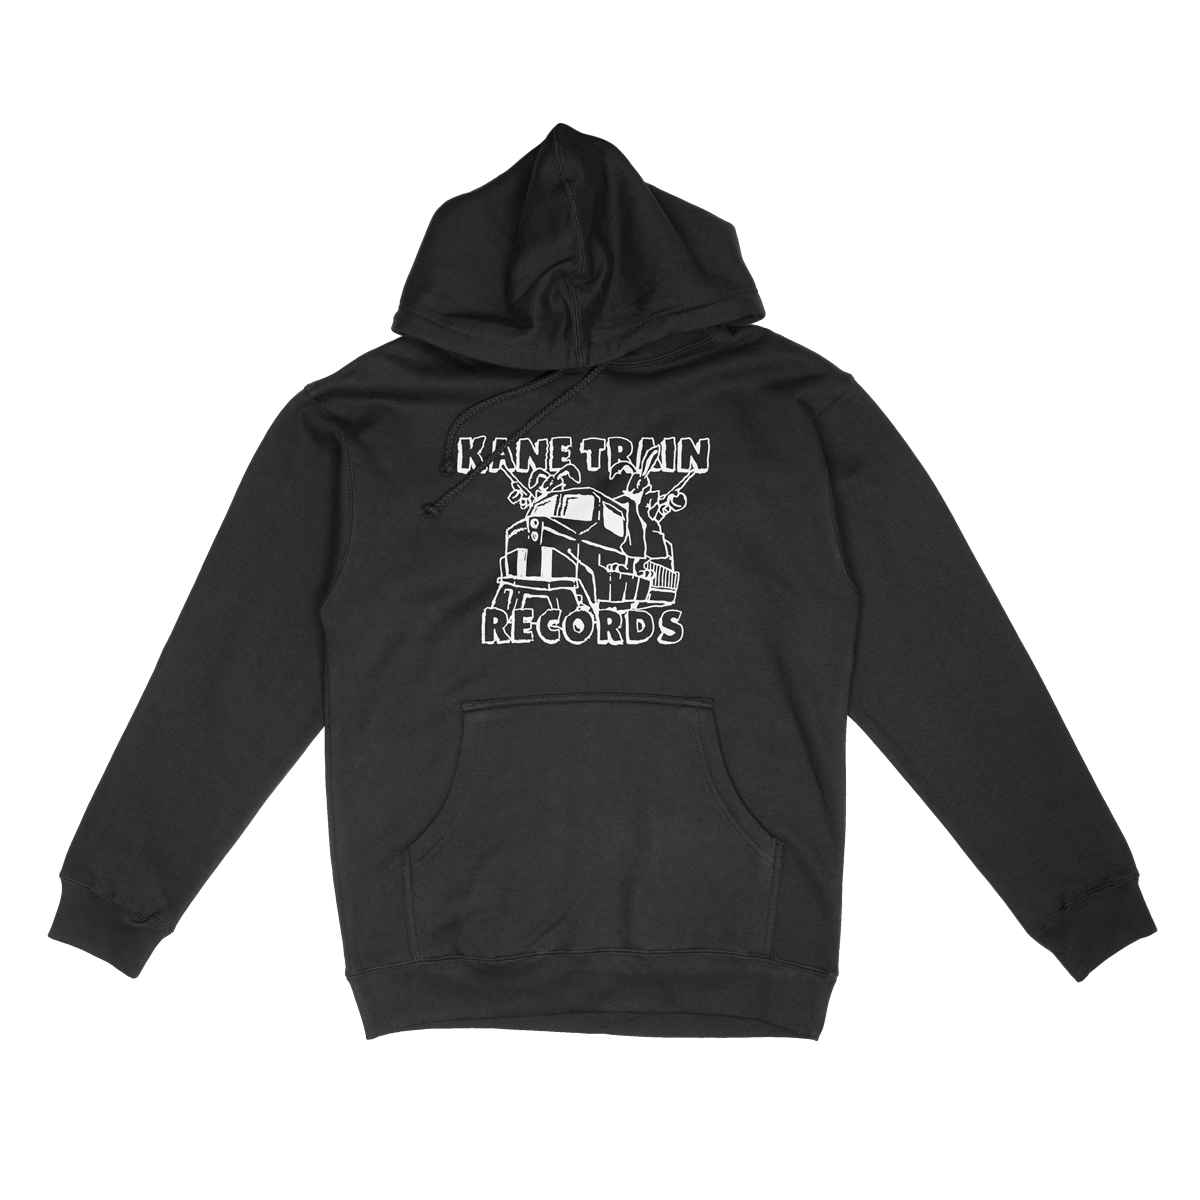 Kane Train Records Hoodie